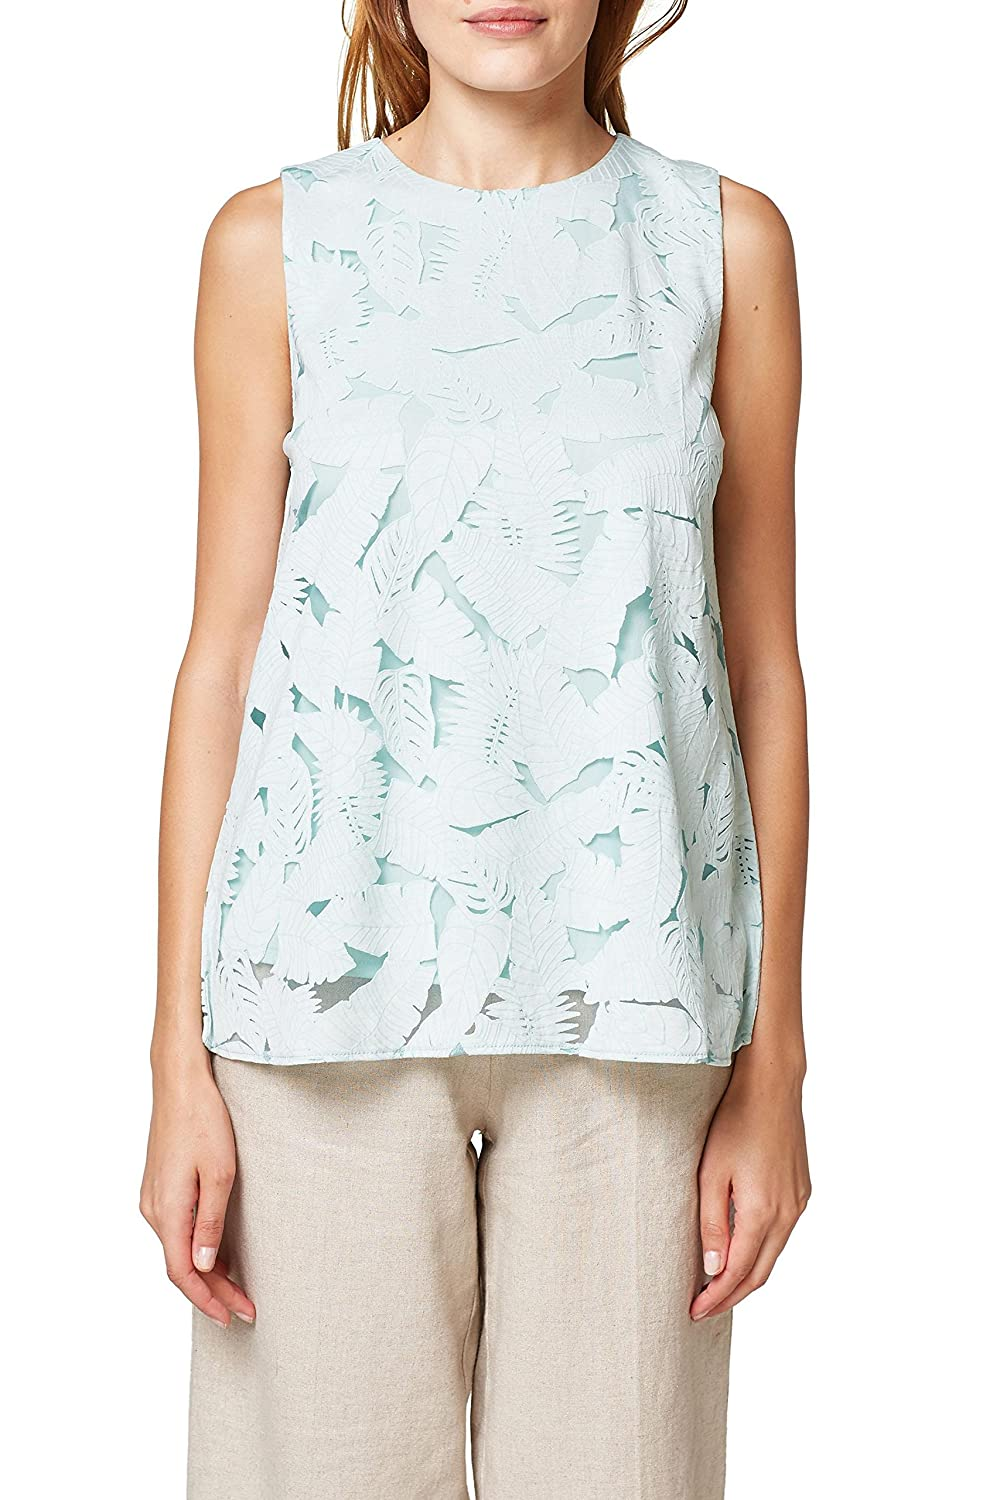 ESPRIT Collection Camiseta sin Mangas para Mujer